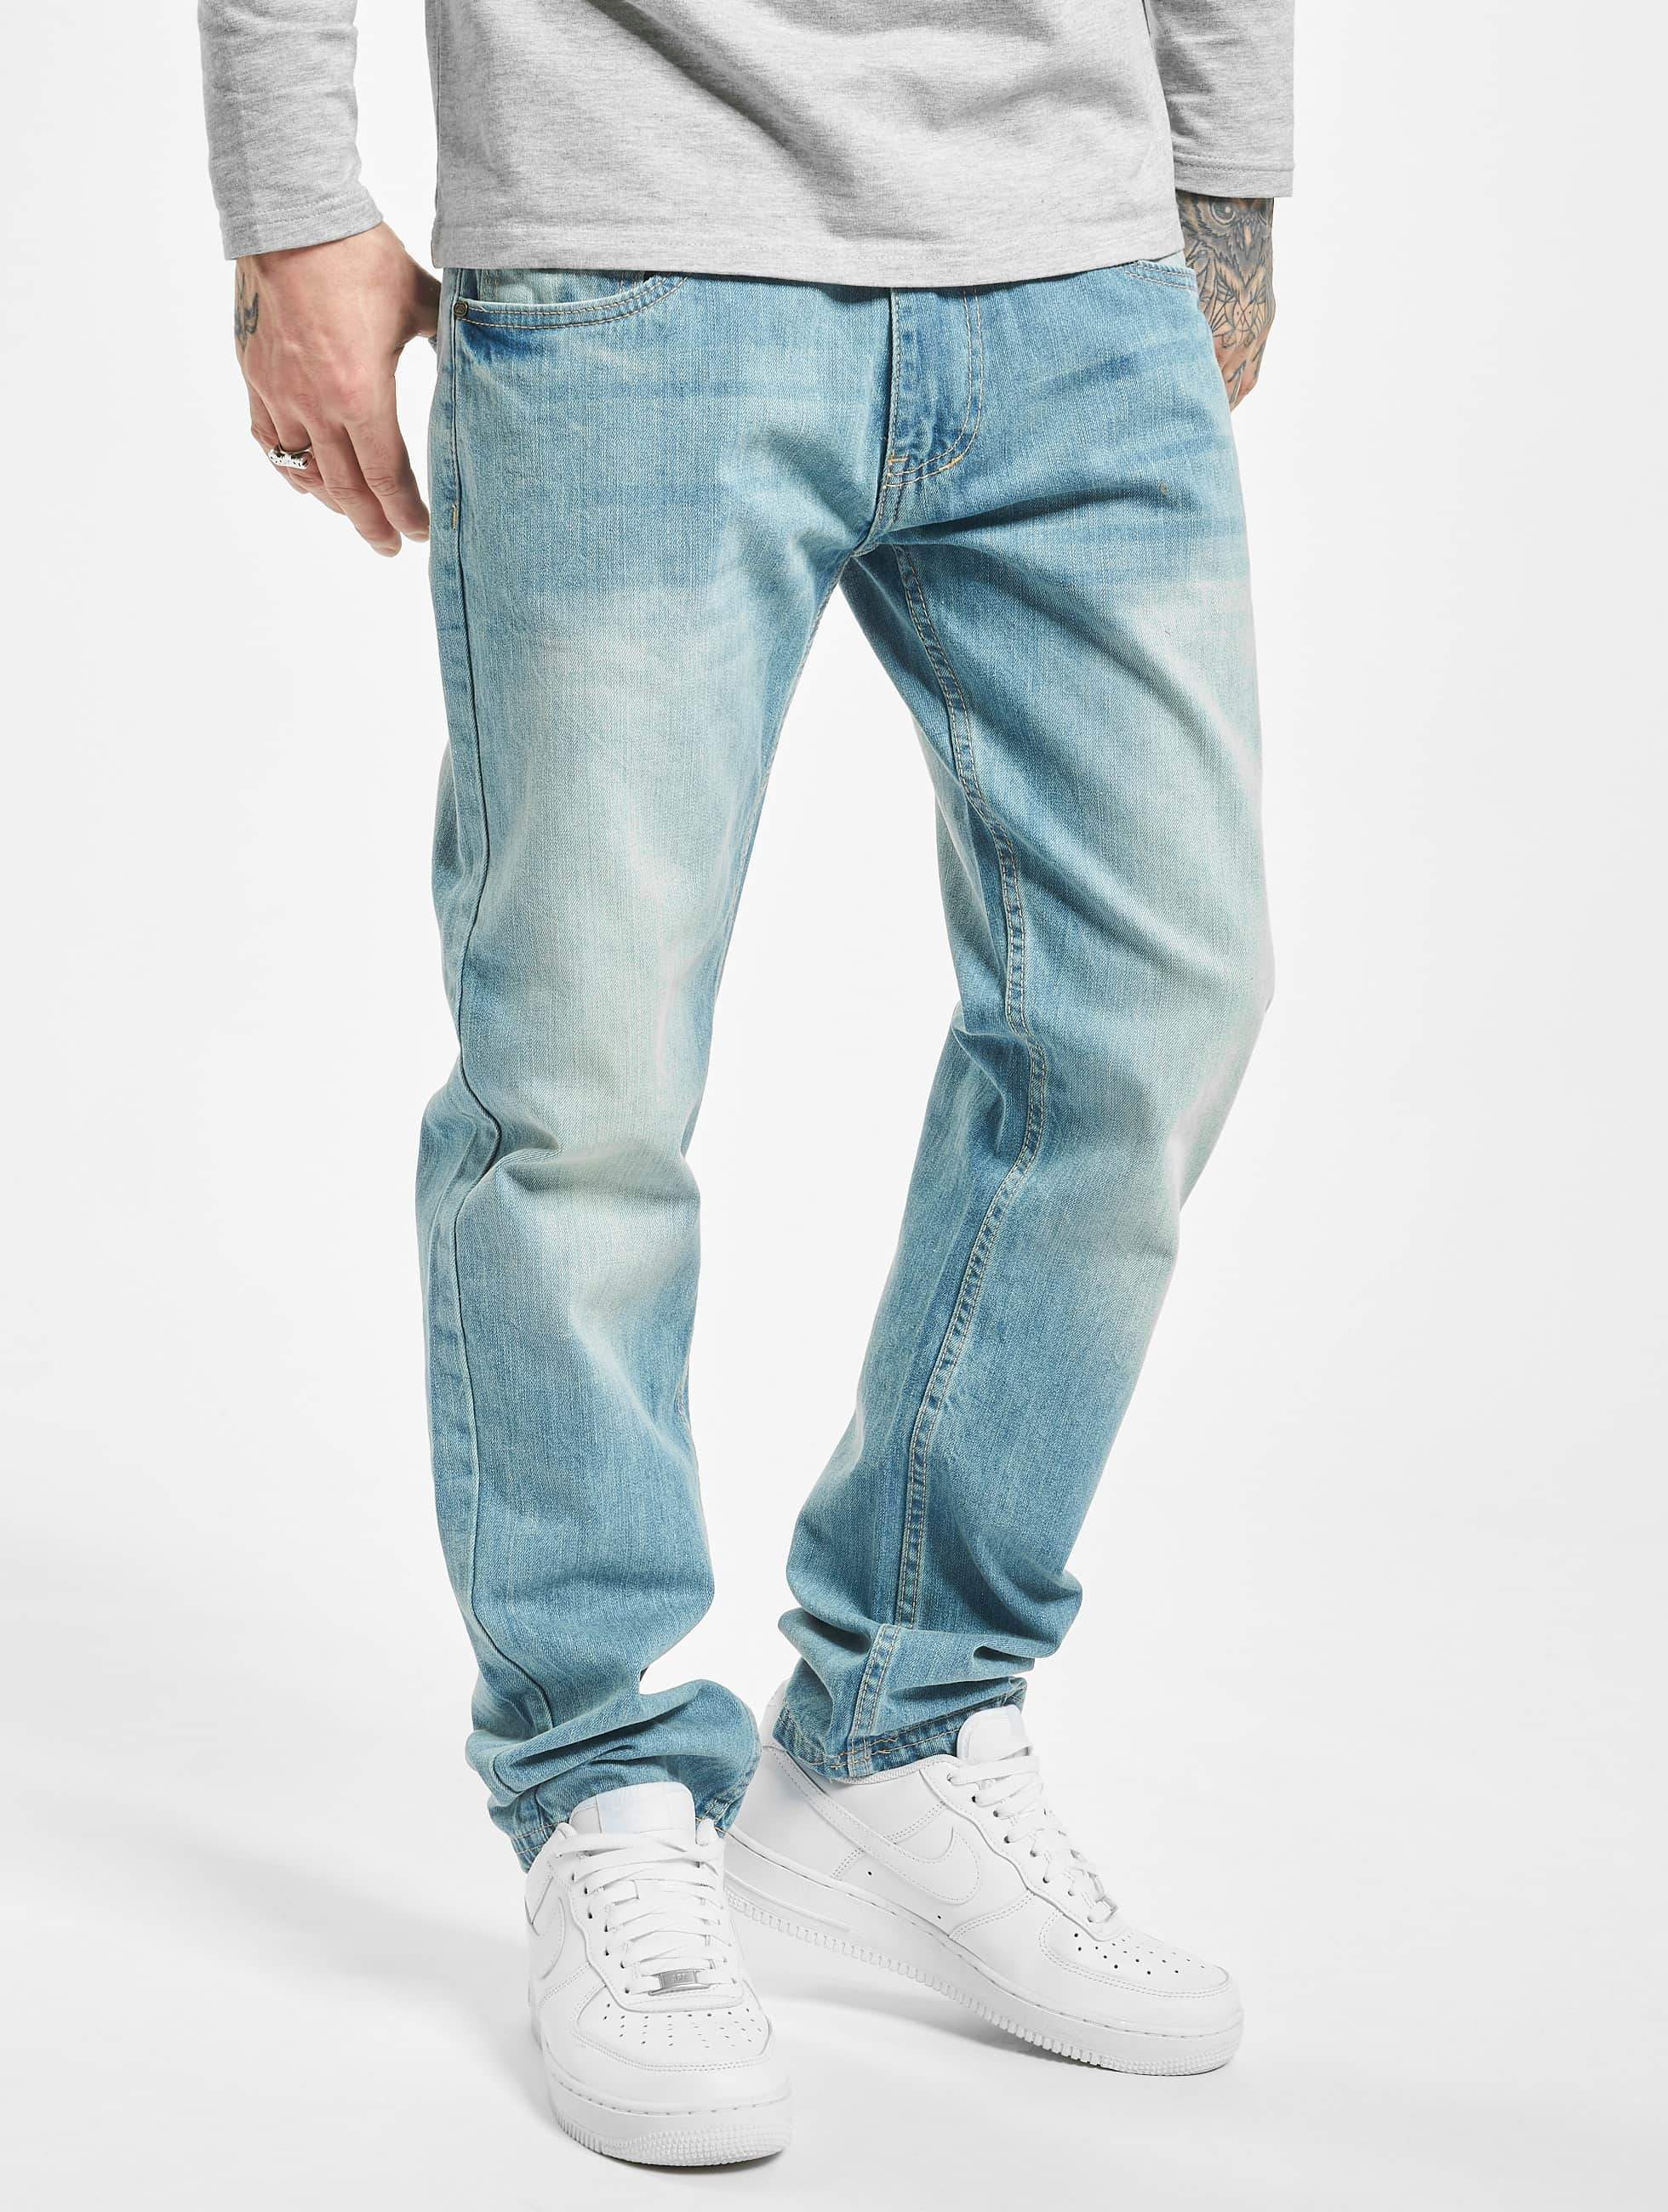 Ecko Unltd. / Straight Fit Jeans Bour Bonstreet in blue W 32 L 34